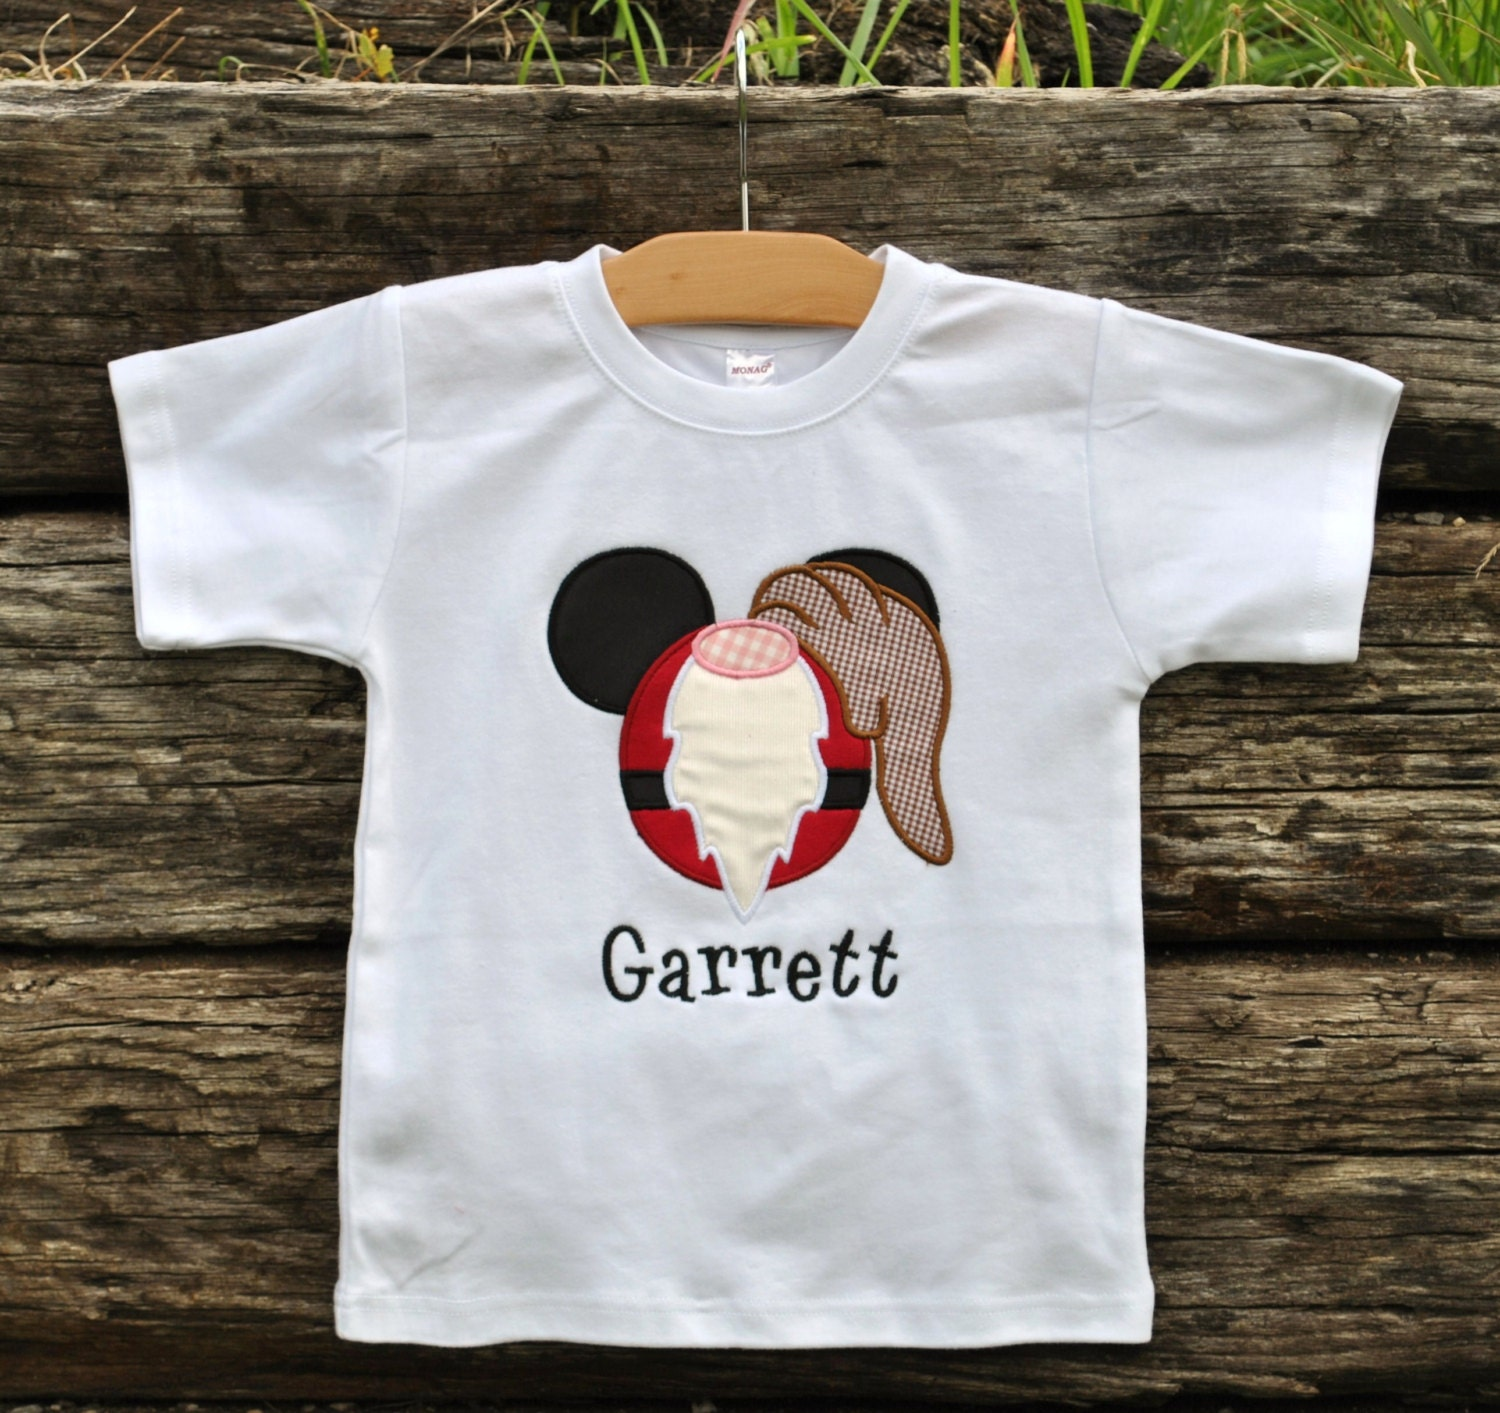 Grumpy Dwarf Mister Mouse Shirt For Boys. Sizes 6m-12yrs. By